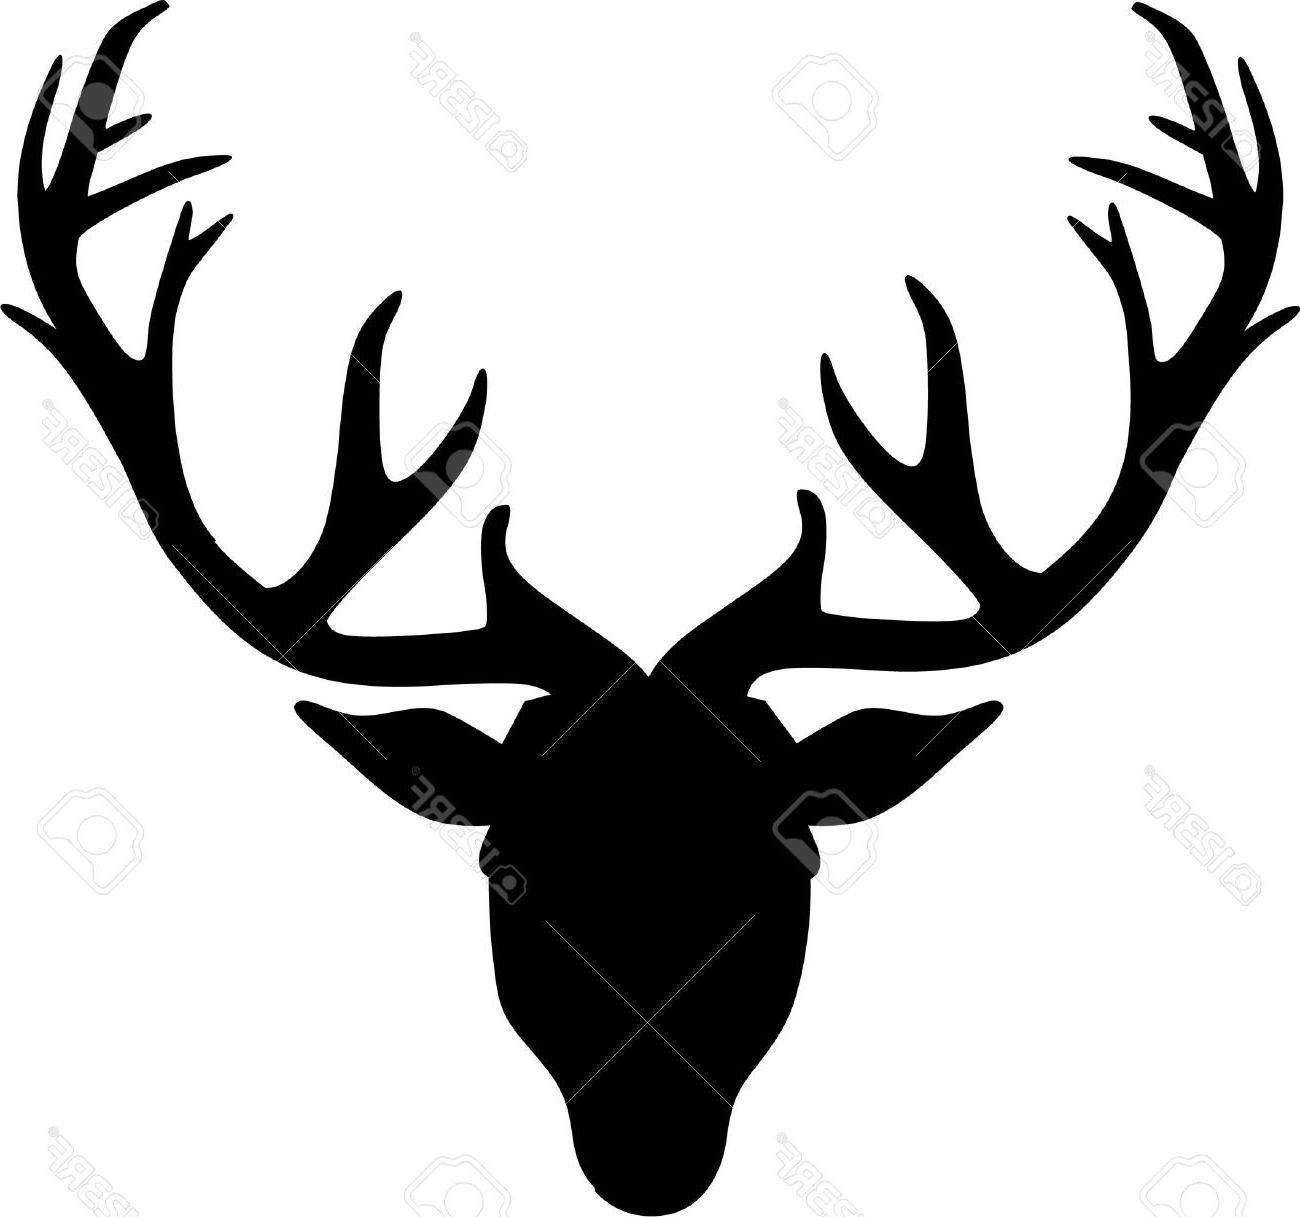 Reindeer head outline clipart black and white stock Best Deer Head Outline Clip Art Cdr » Free Vector Art ... black and white stock